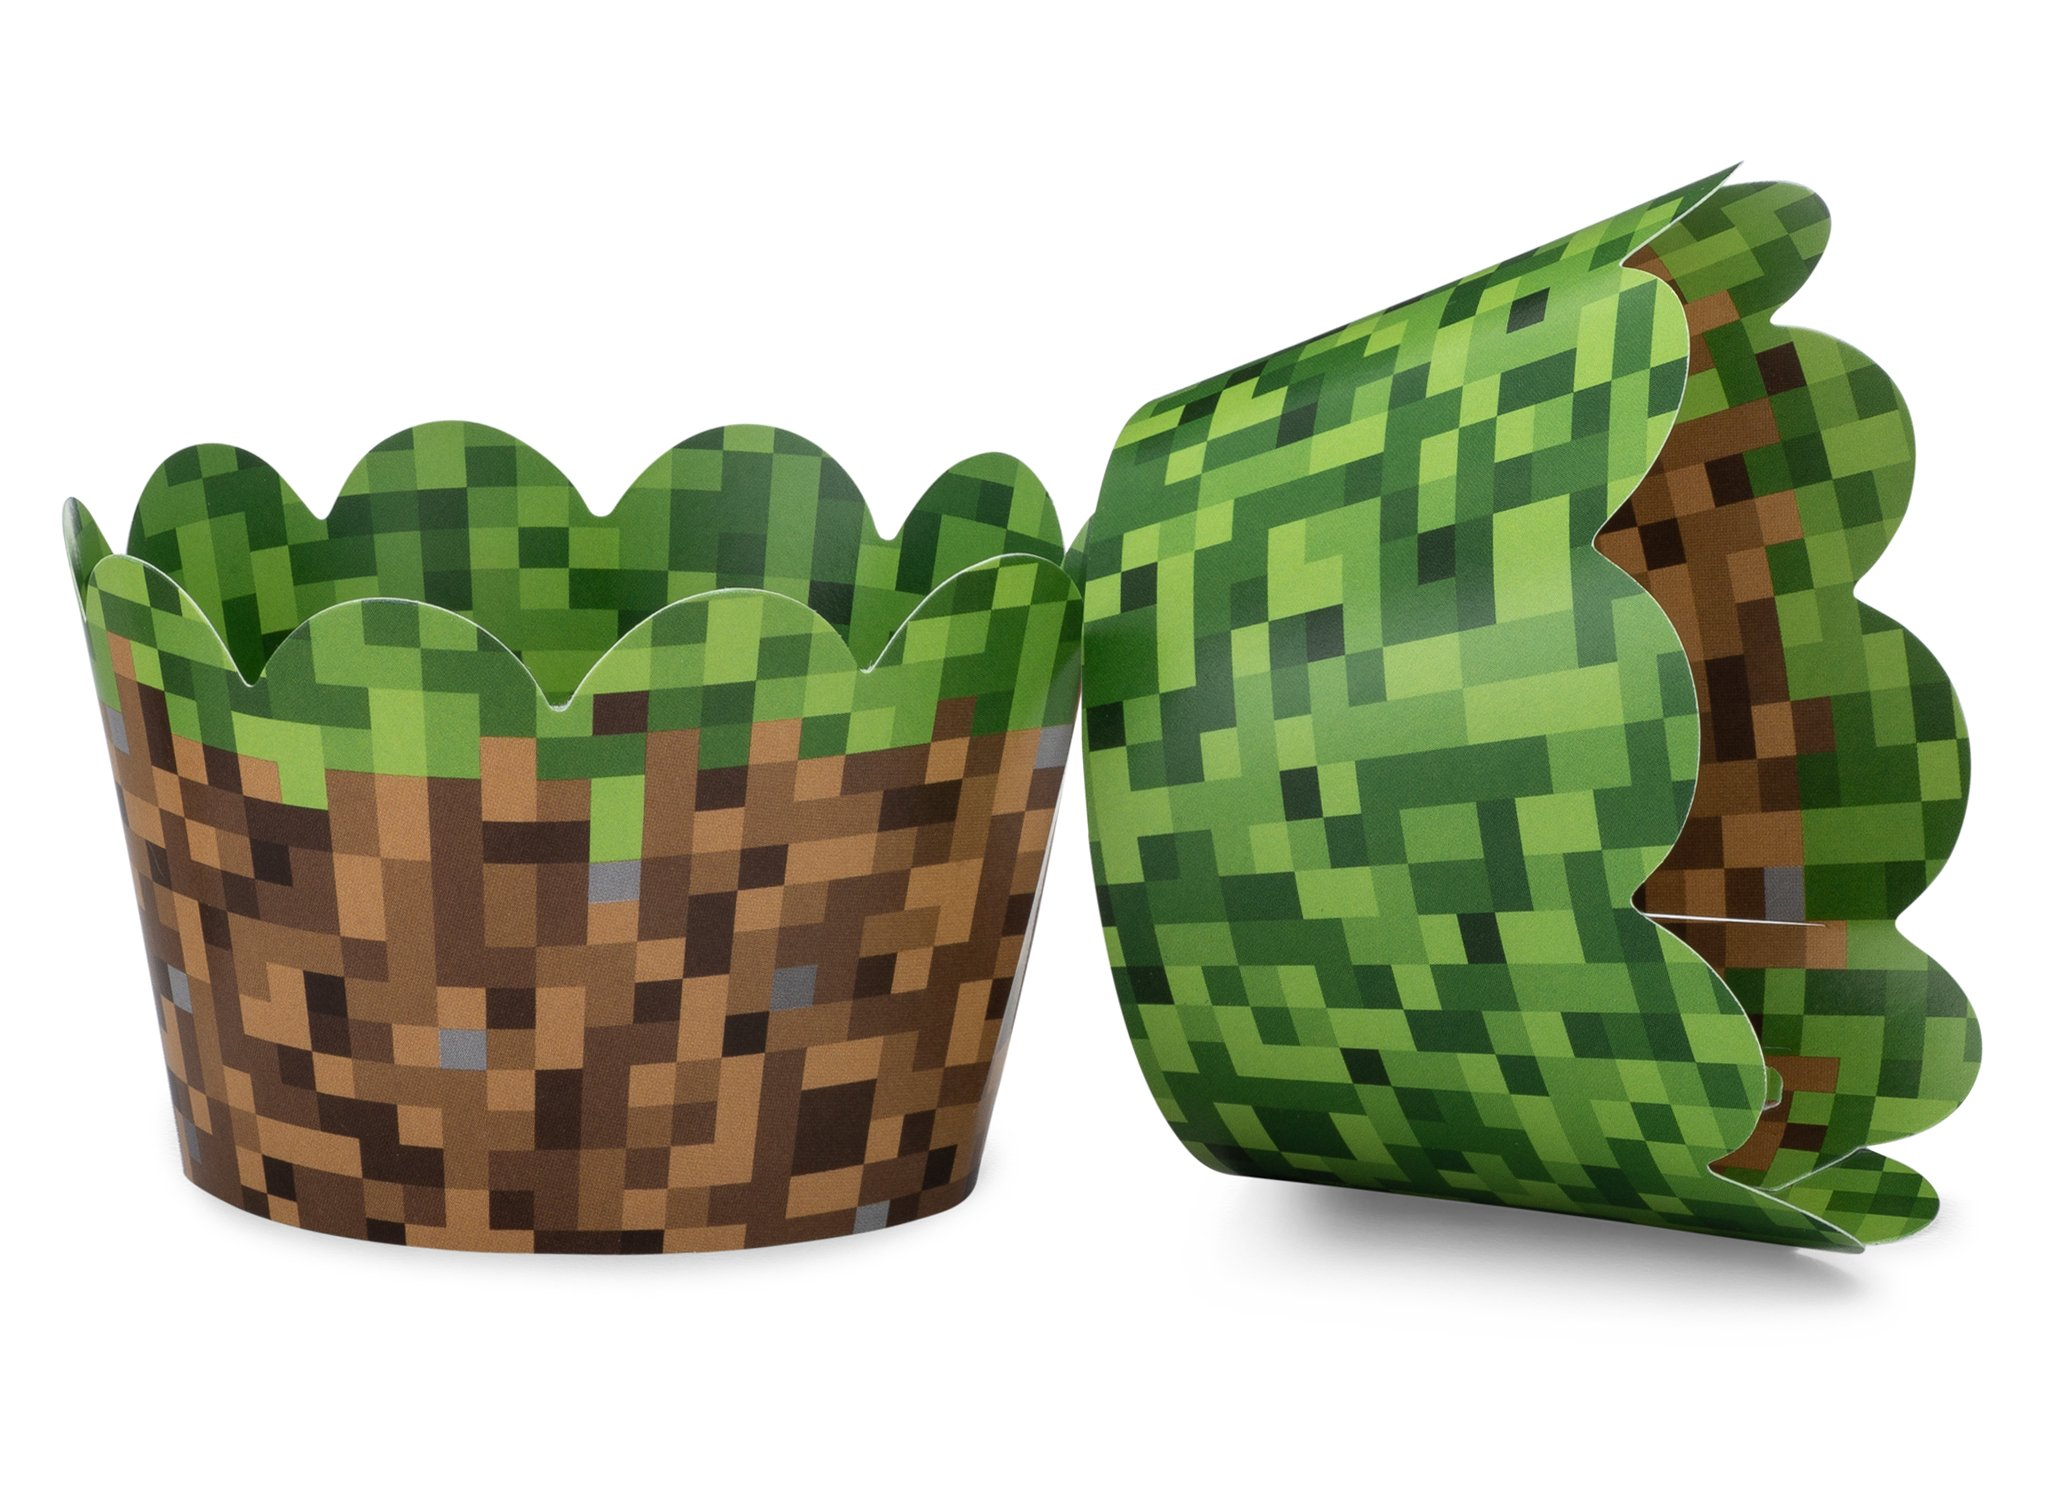 Miner Themed Pixel Grass Cupcake Wrappers for Boys Birthday Parties, Vintage 8-Bit Birthday Party. Set of 24 Reversible Engineer Grass and Green Pixel Cup Cake Holder Wraps. Green, Brown, Gray by Toula Products